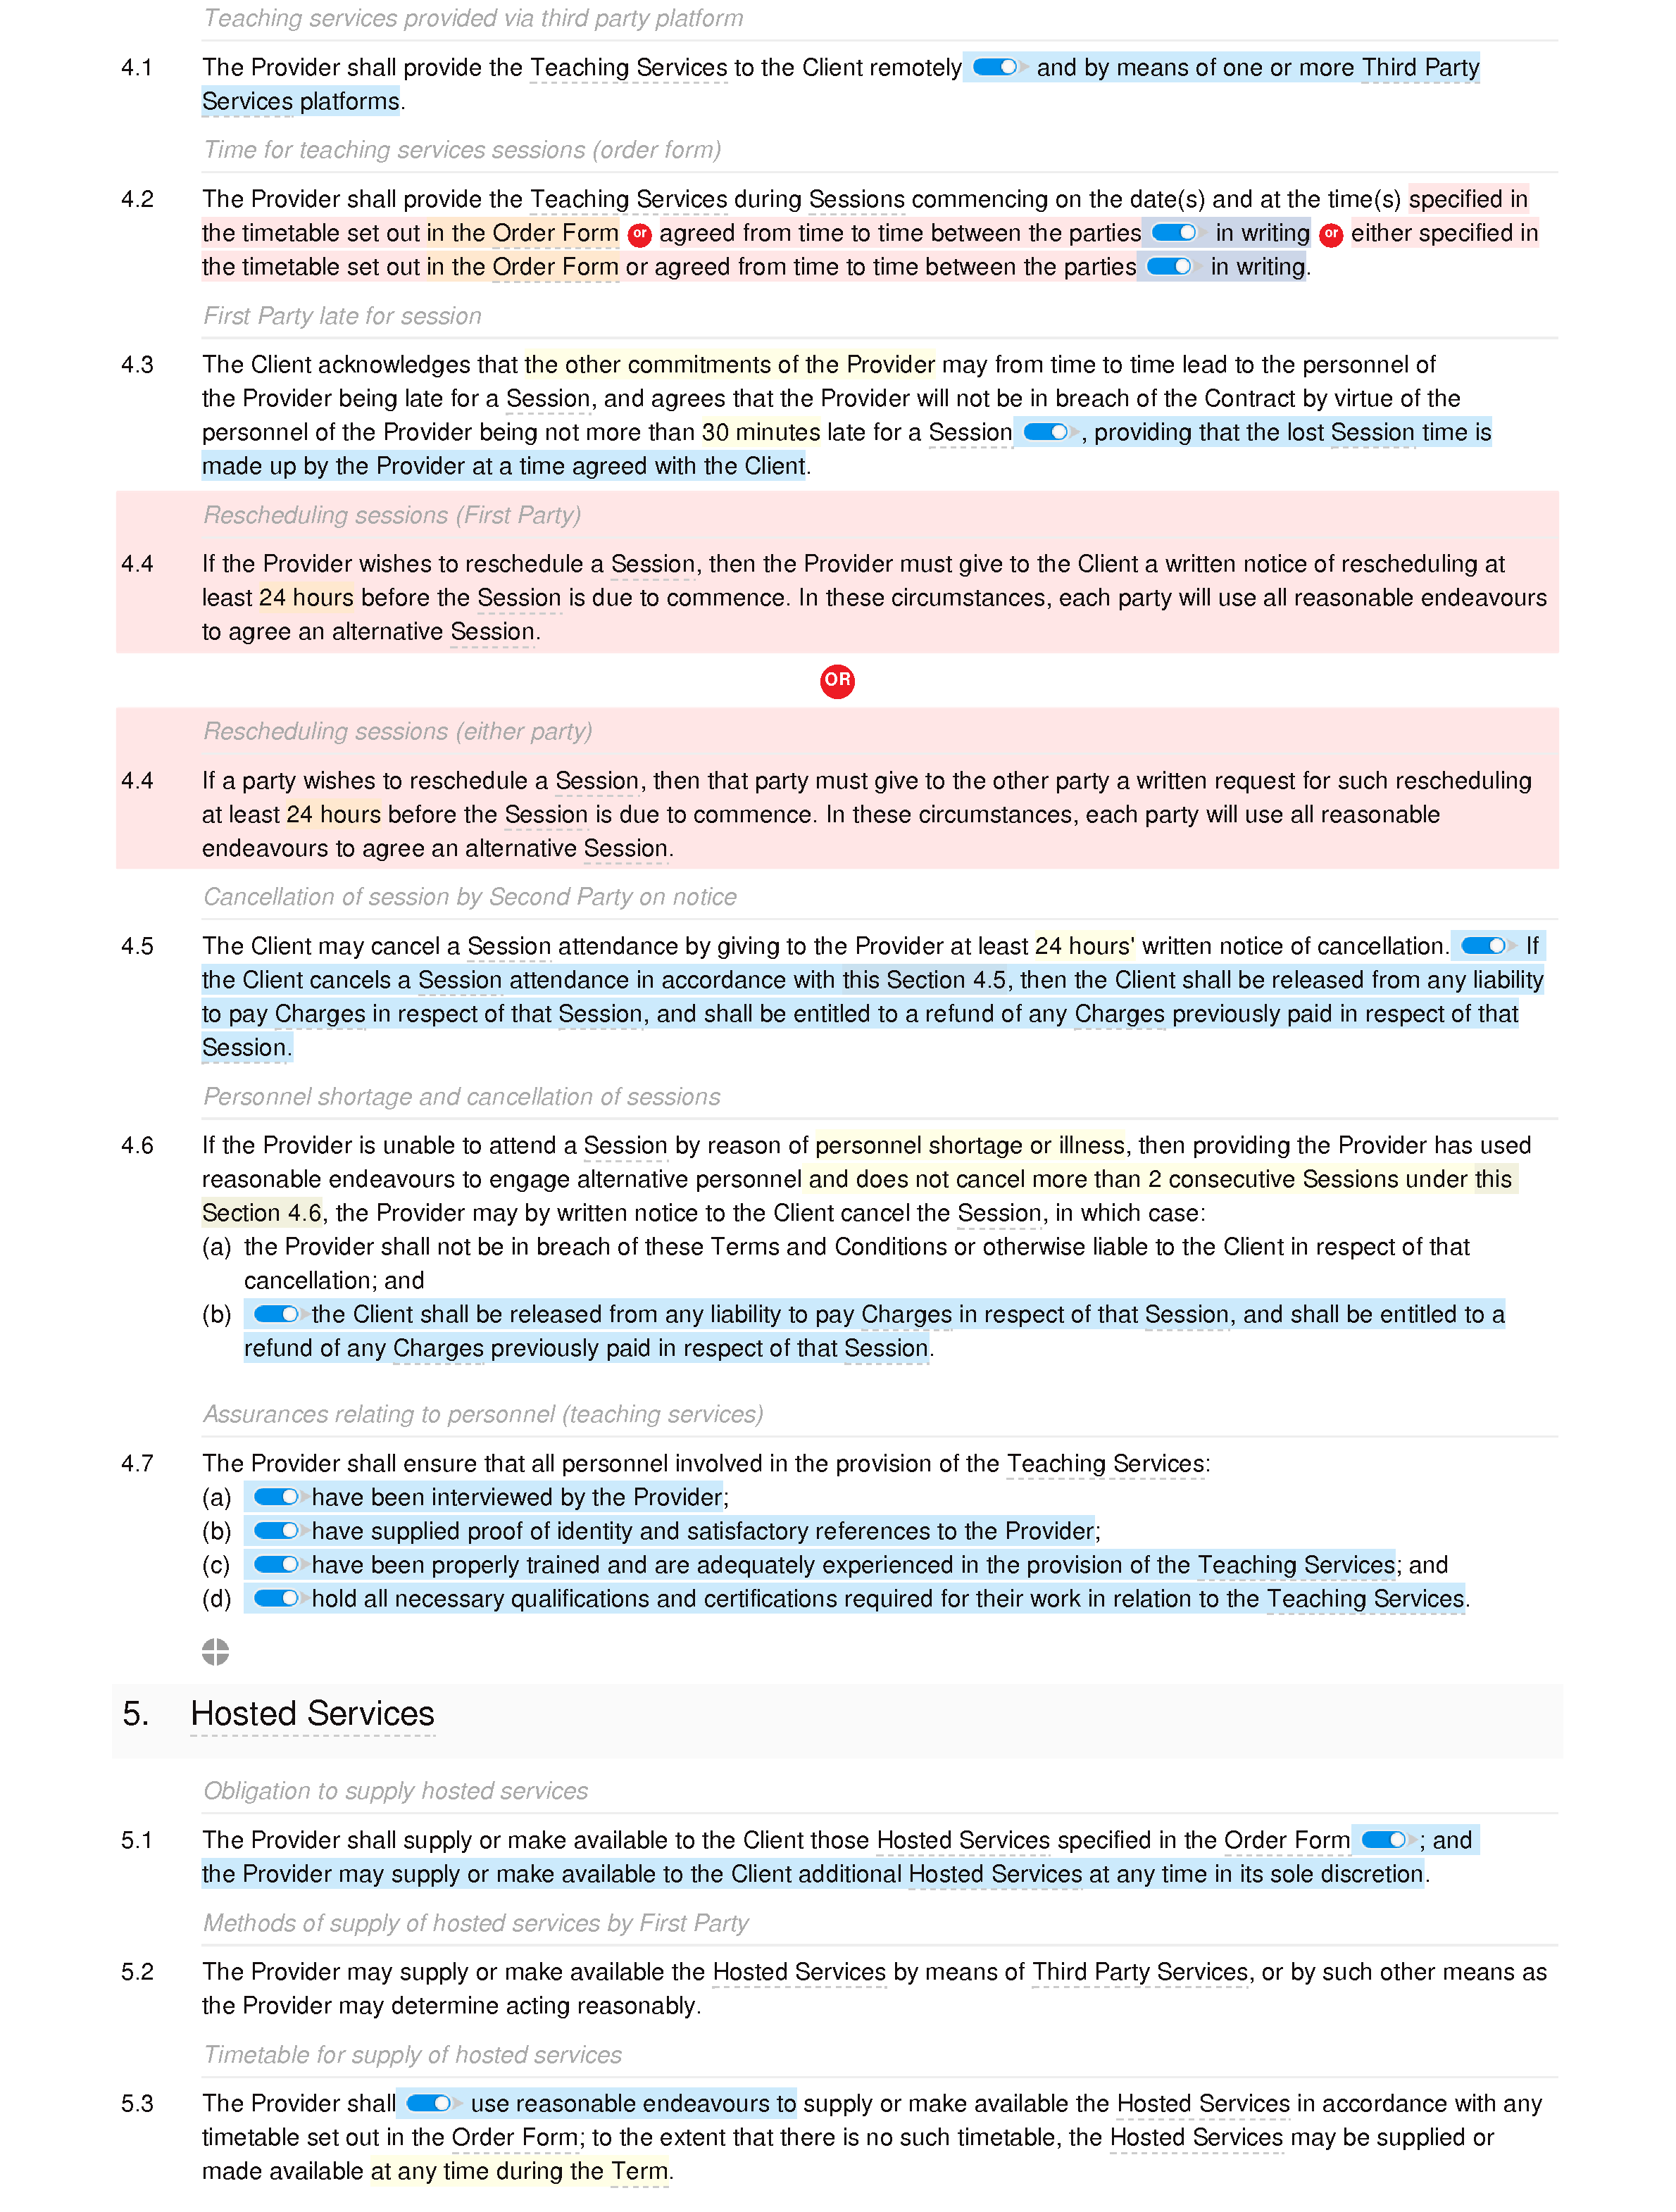 Online education and training terms and conditions (B2B and B2C) document editor preview